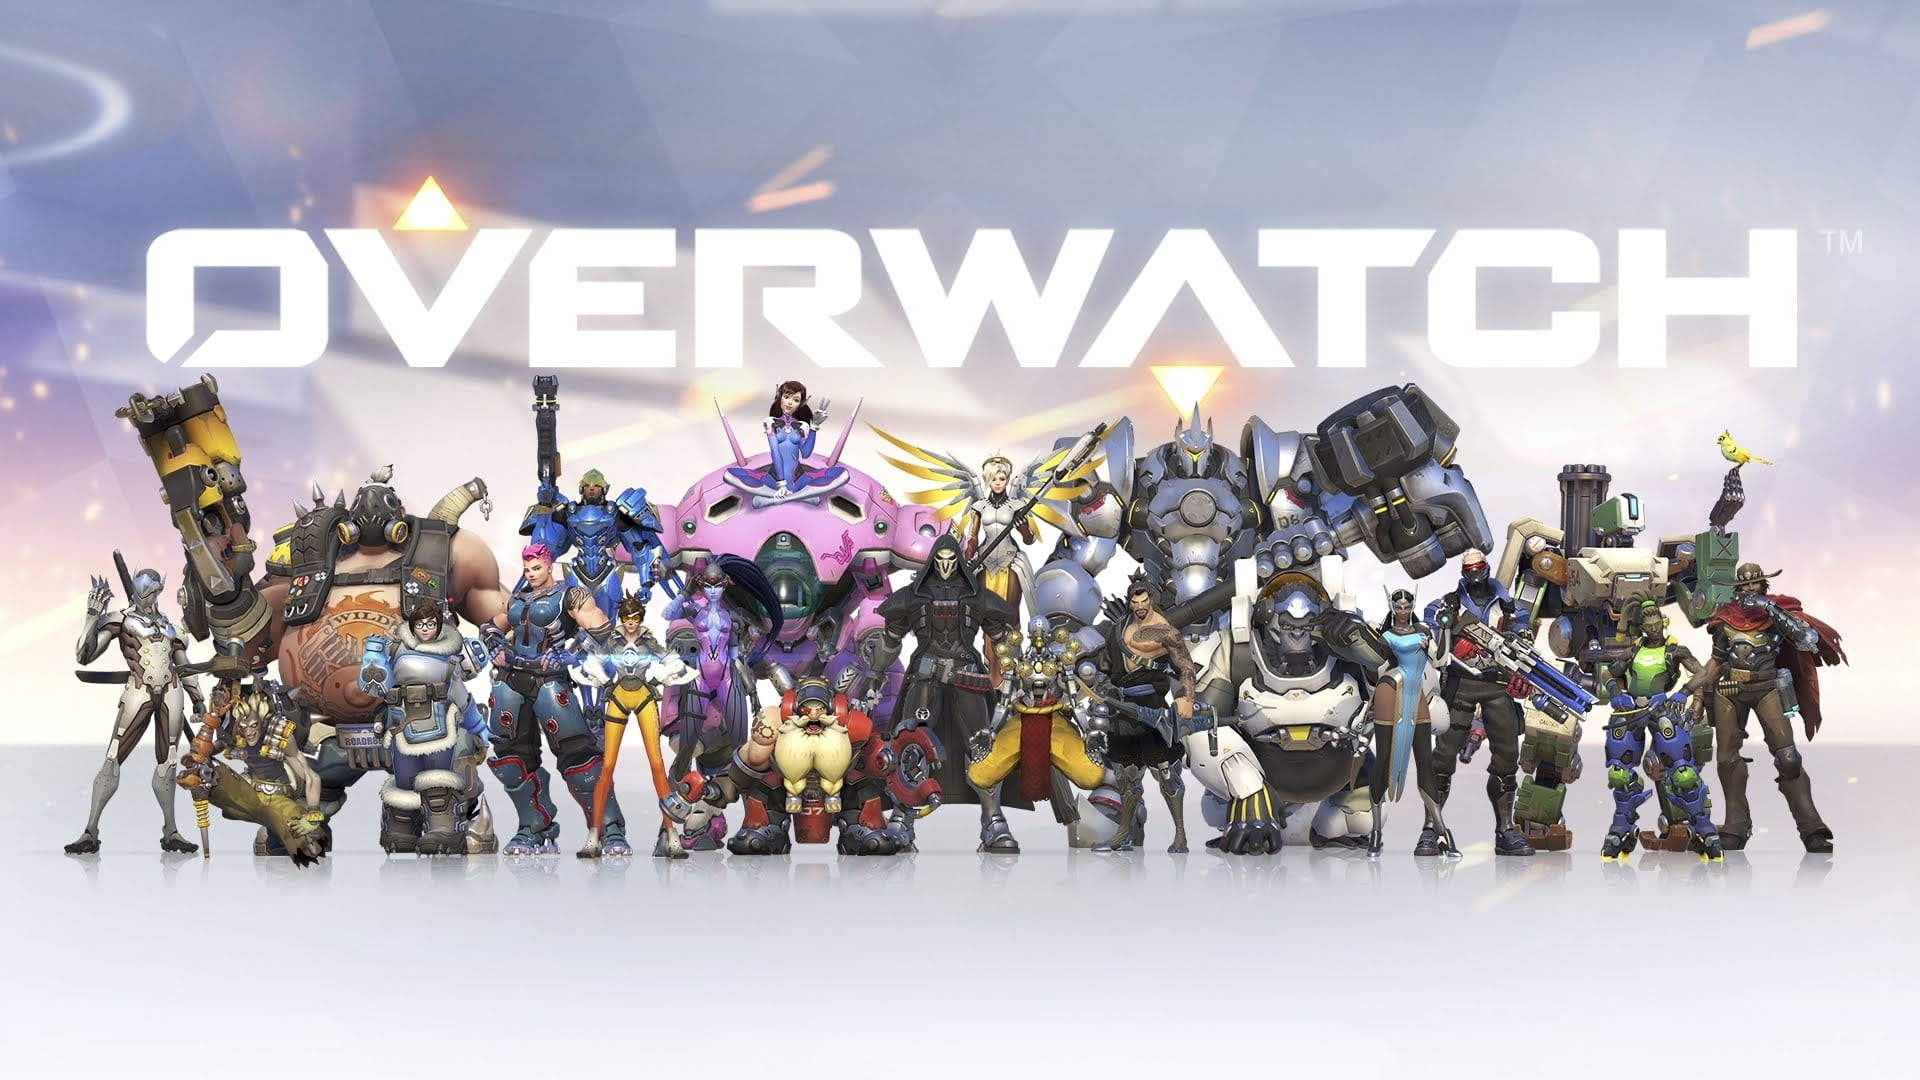 Overwatch was born out of a failure for Blizzard